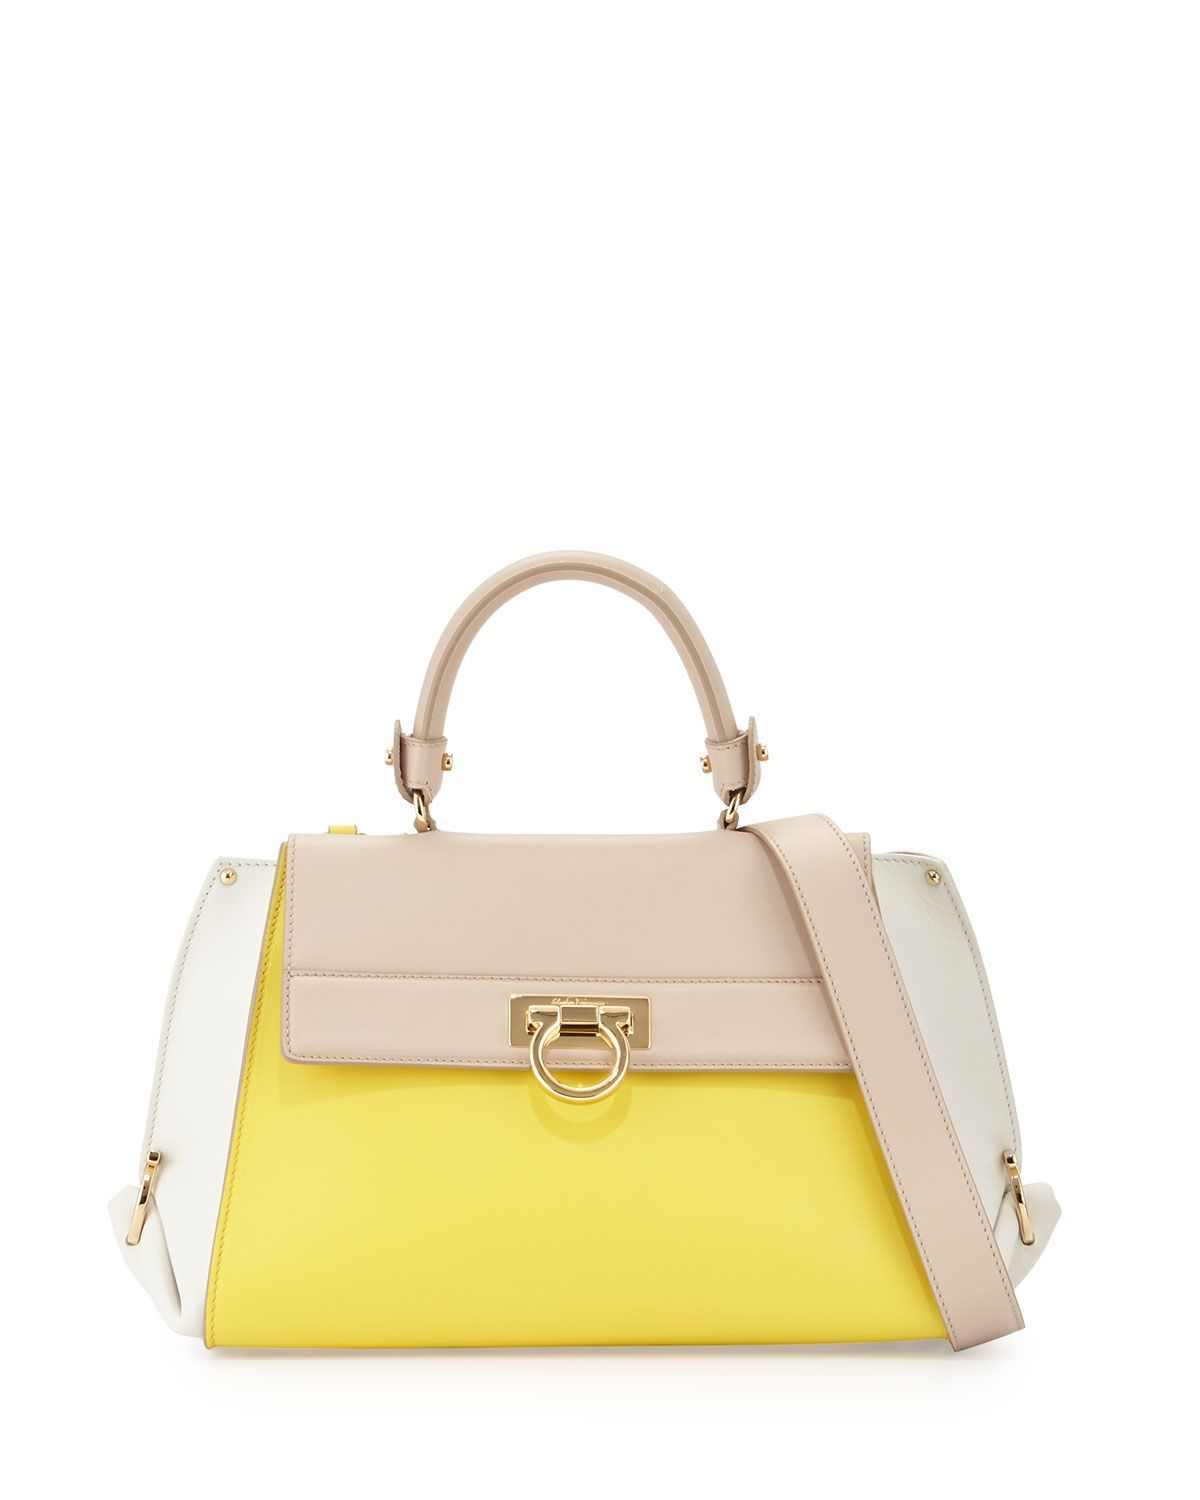 Sofia G Colorblock Leather Satchel Bag 5e0cc0e158551